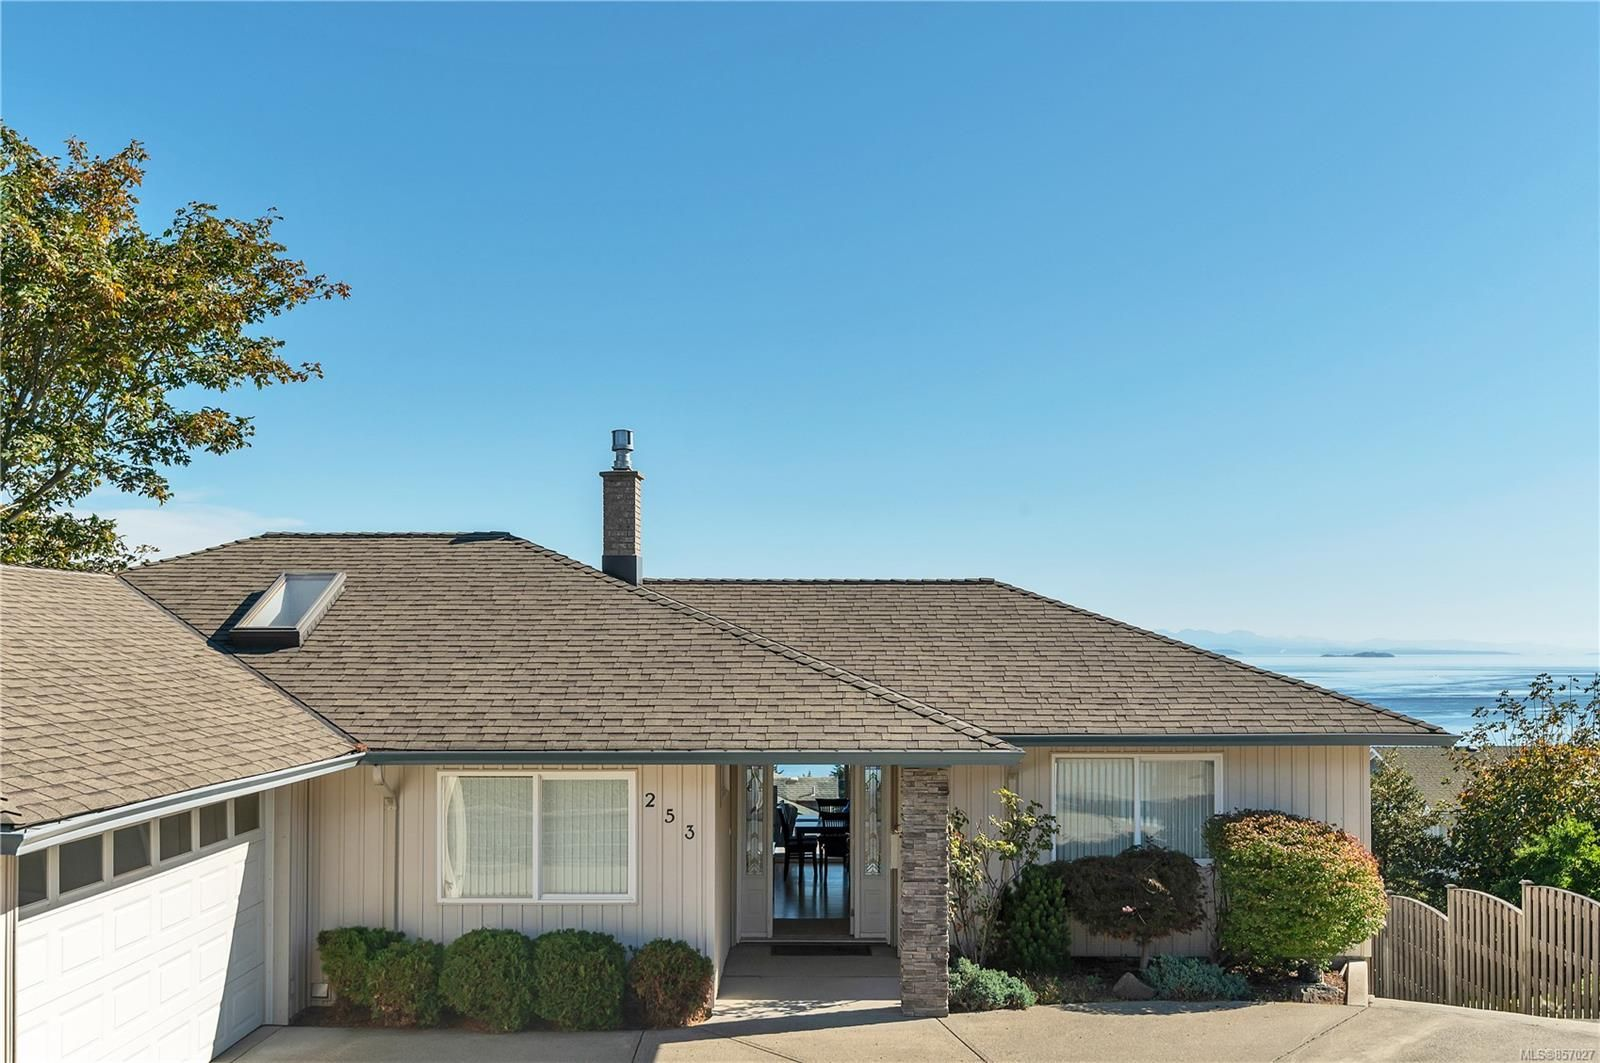 Photo 31: Photos: 253 S Alder St in : CR Campbell River South House for sale (Campbell River)  : MLS®# 857027